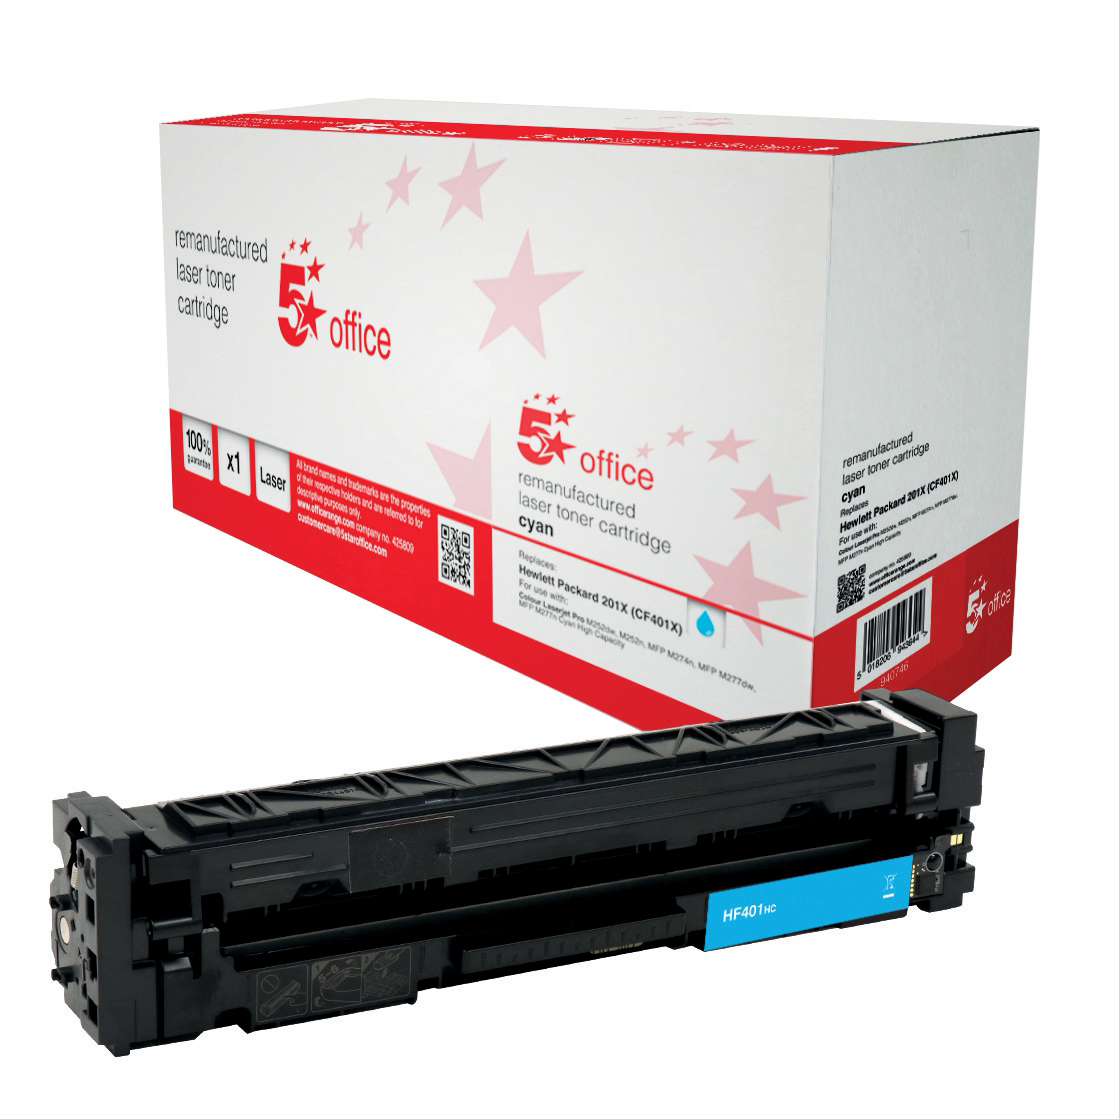 Laser Toner Cartridges 5 Star Office Remanufactured Laser Toner Cartridge Page Life 2300pp Cyan HP 201X CF401X Alternative